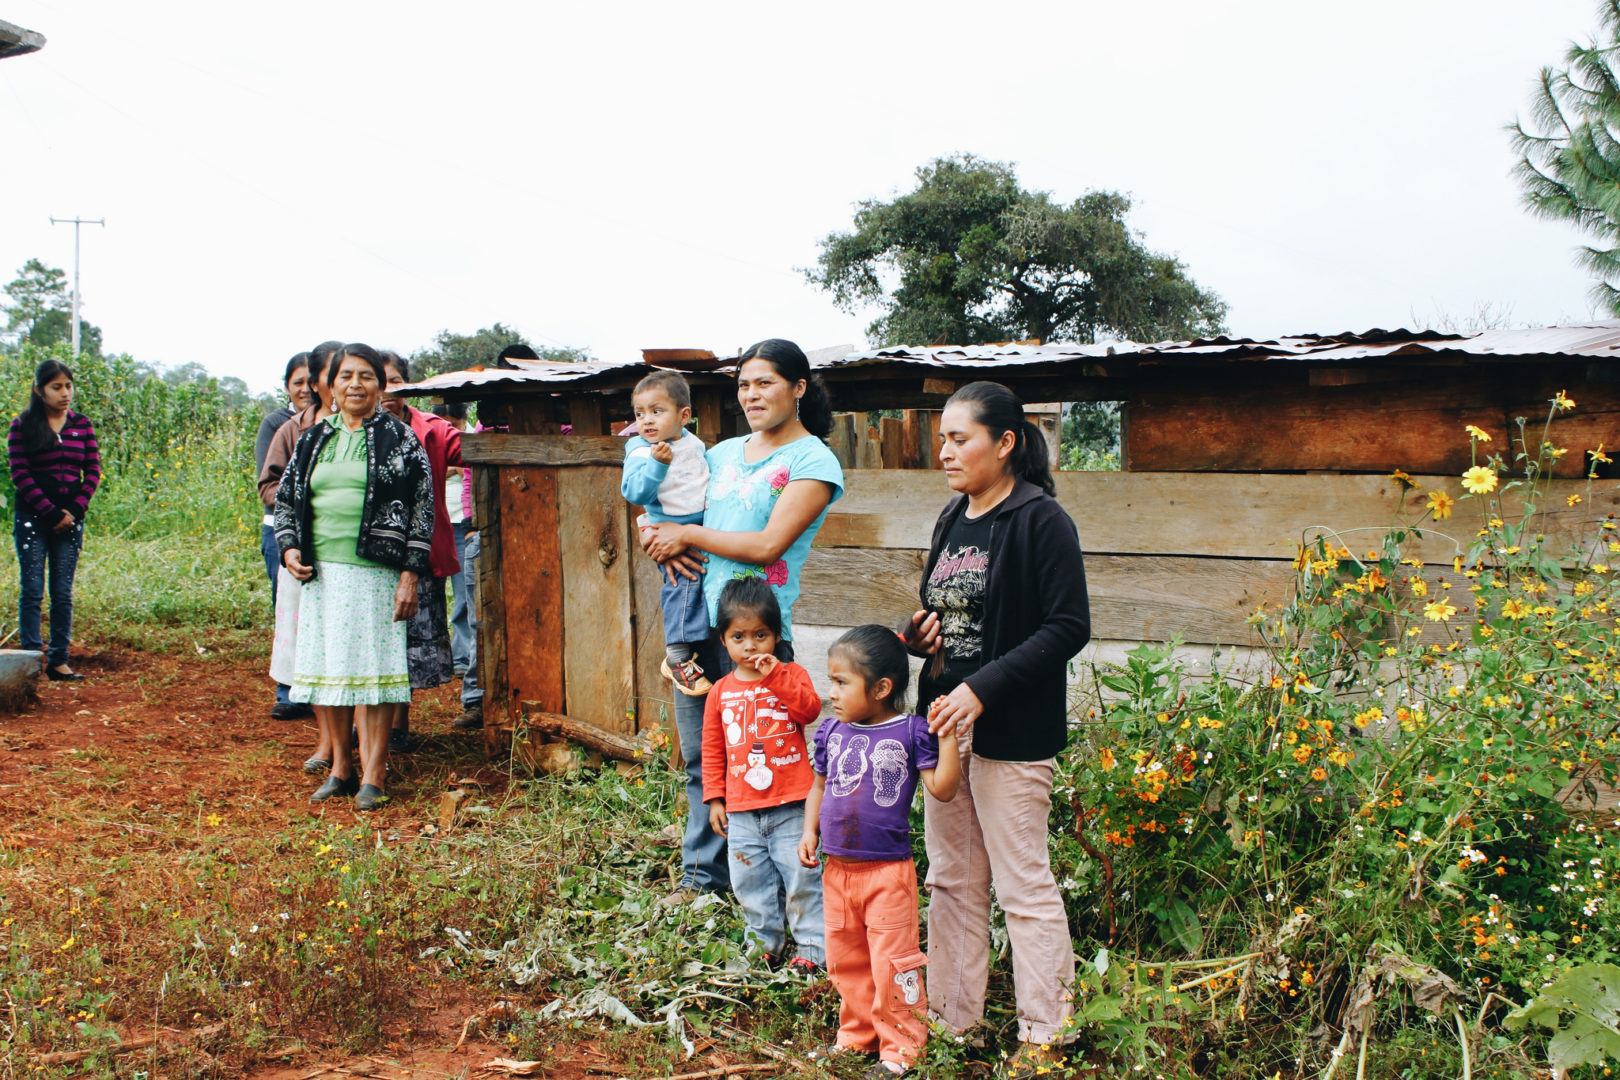 Monte Frio has thrived as a community since participating with Plant With Purpose.